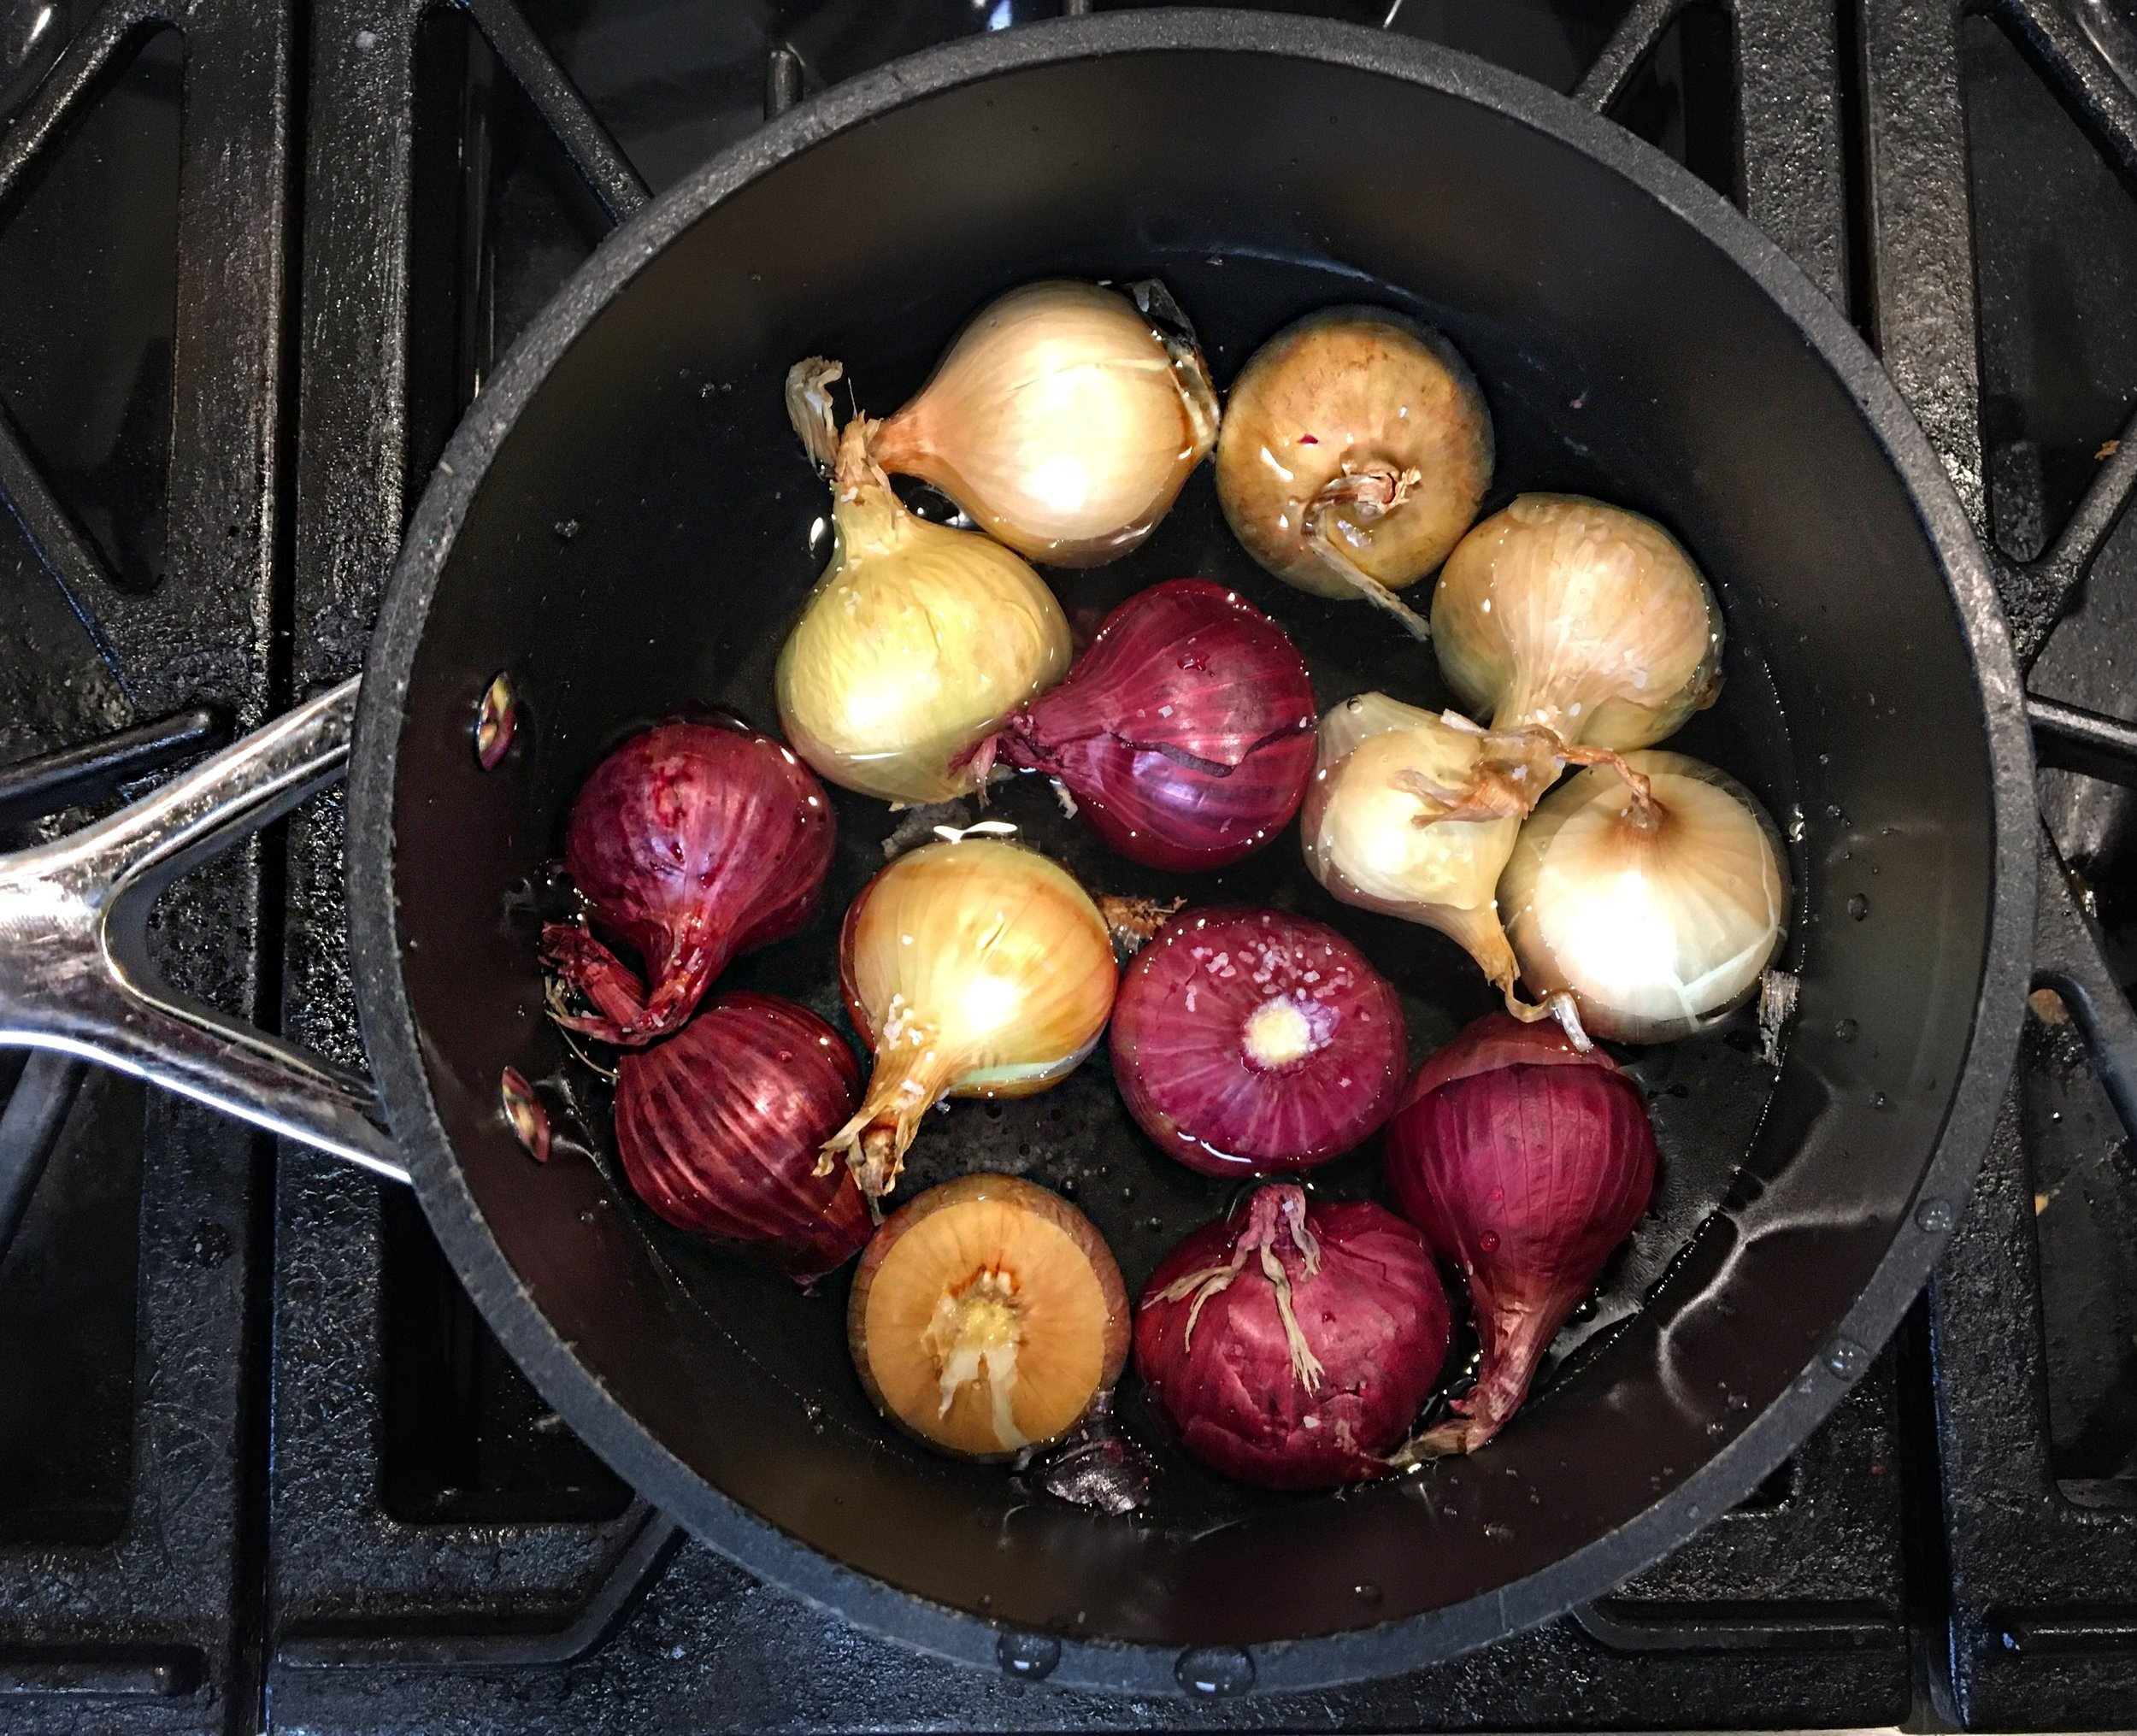 Blanching the boiler onions.